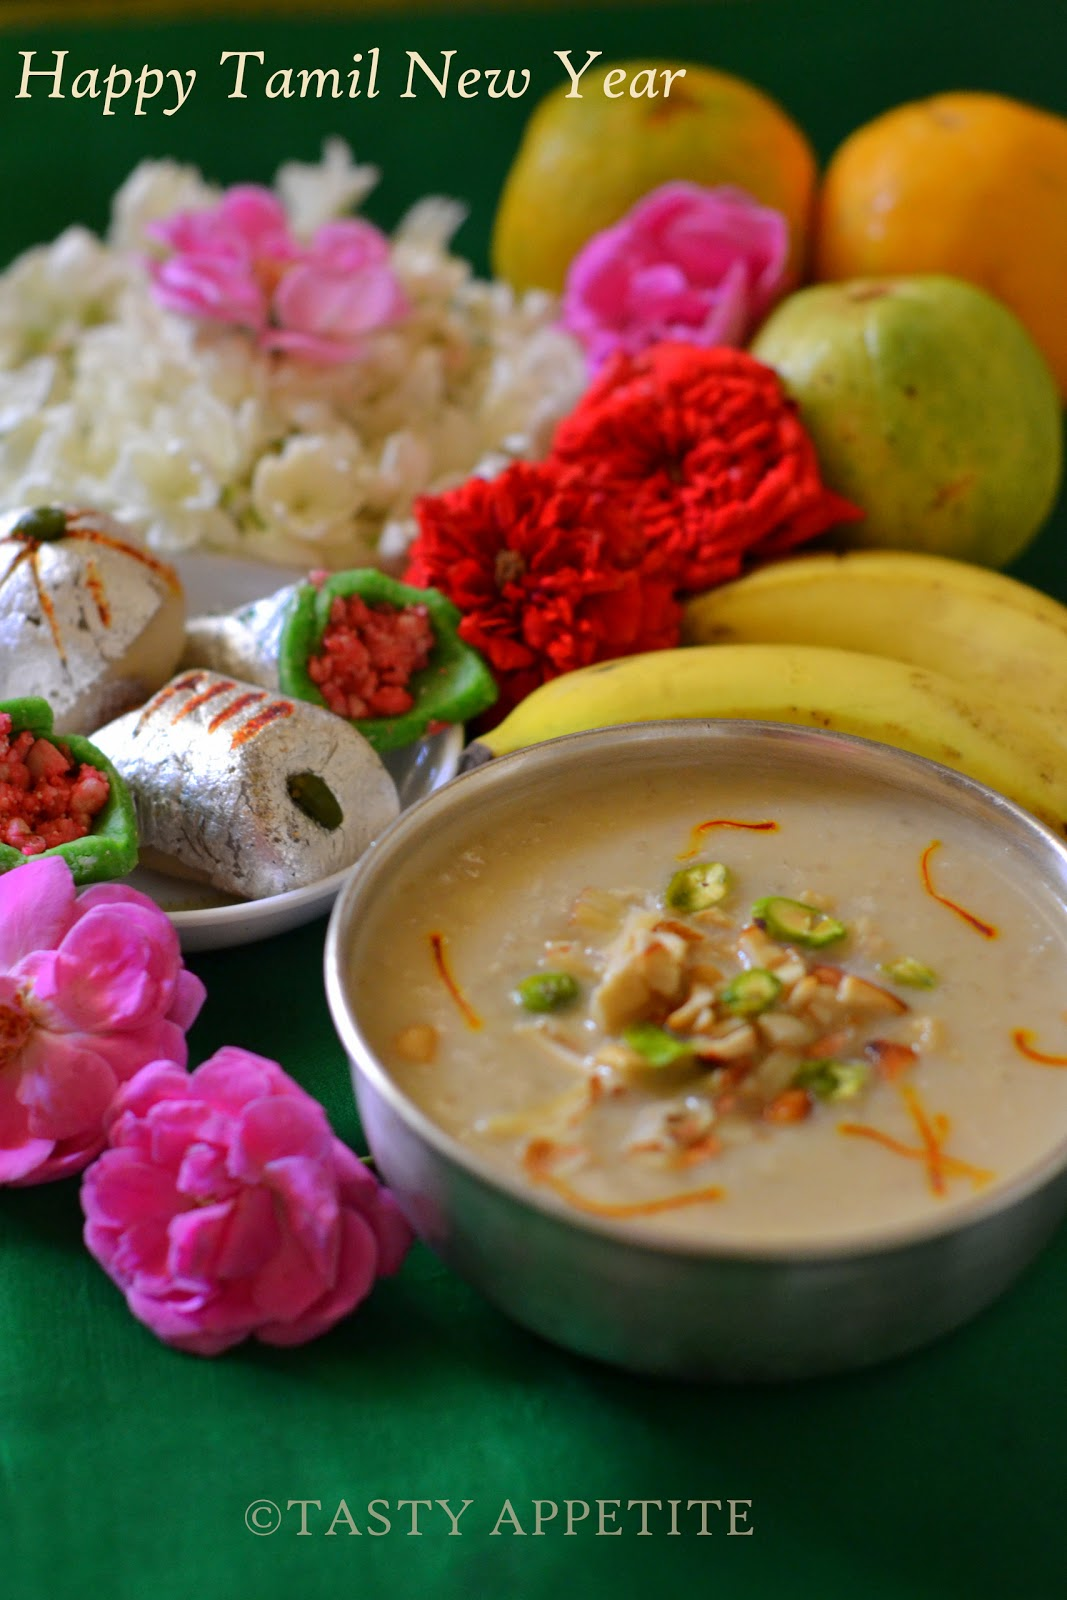 happy tamil new year vishu new year special recipes coconut milk payasam